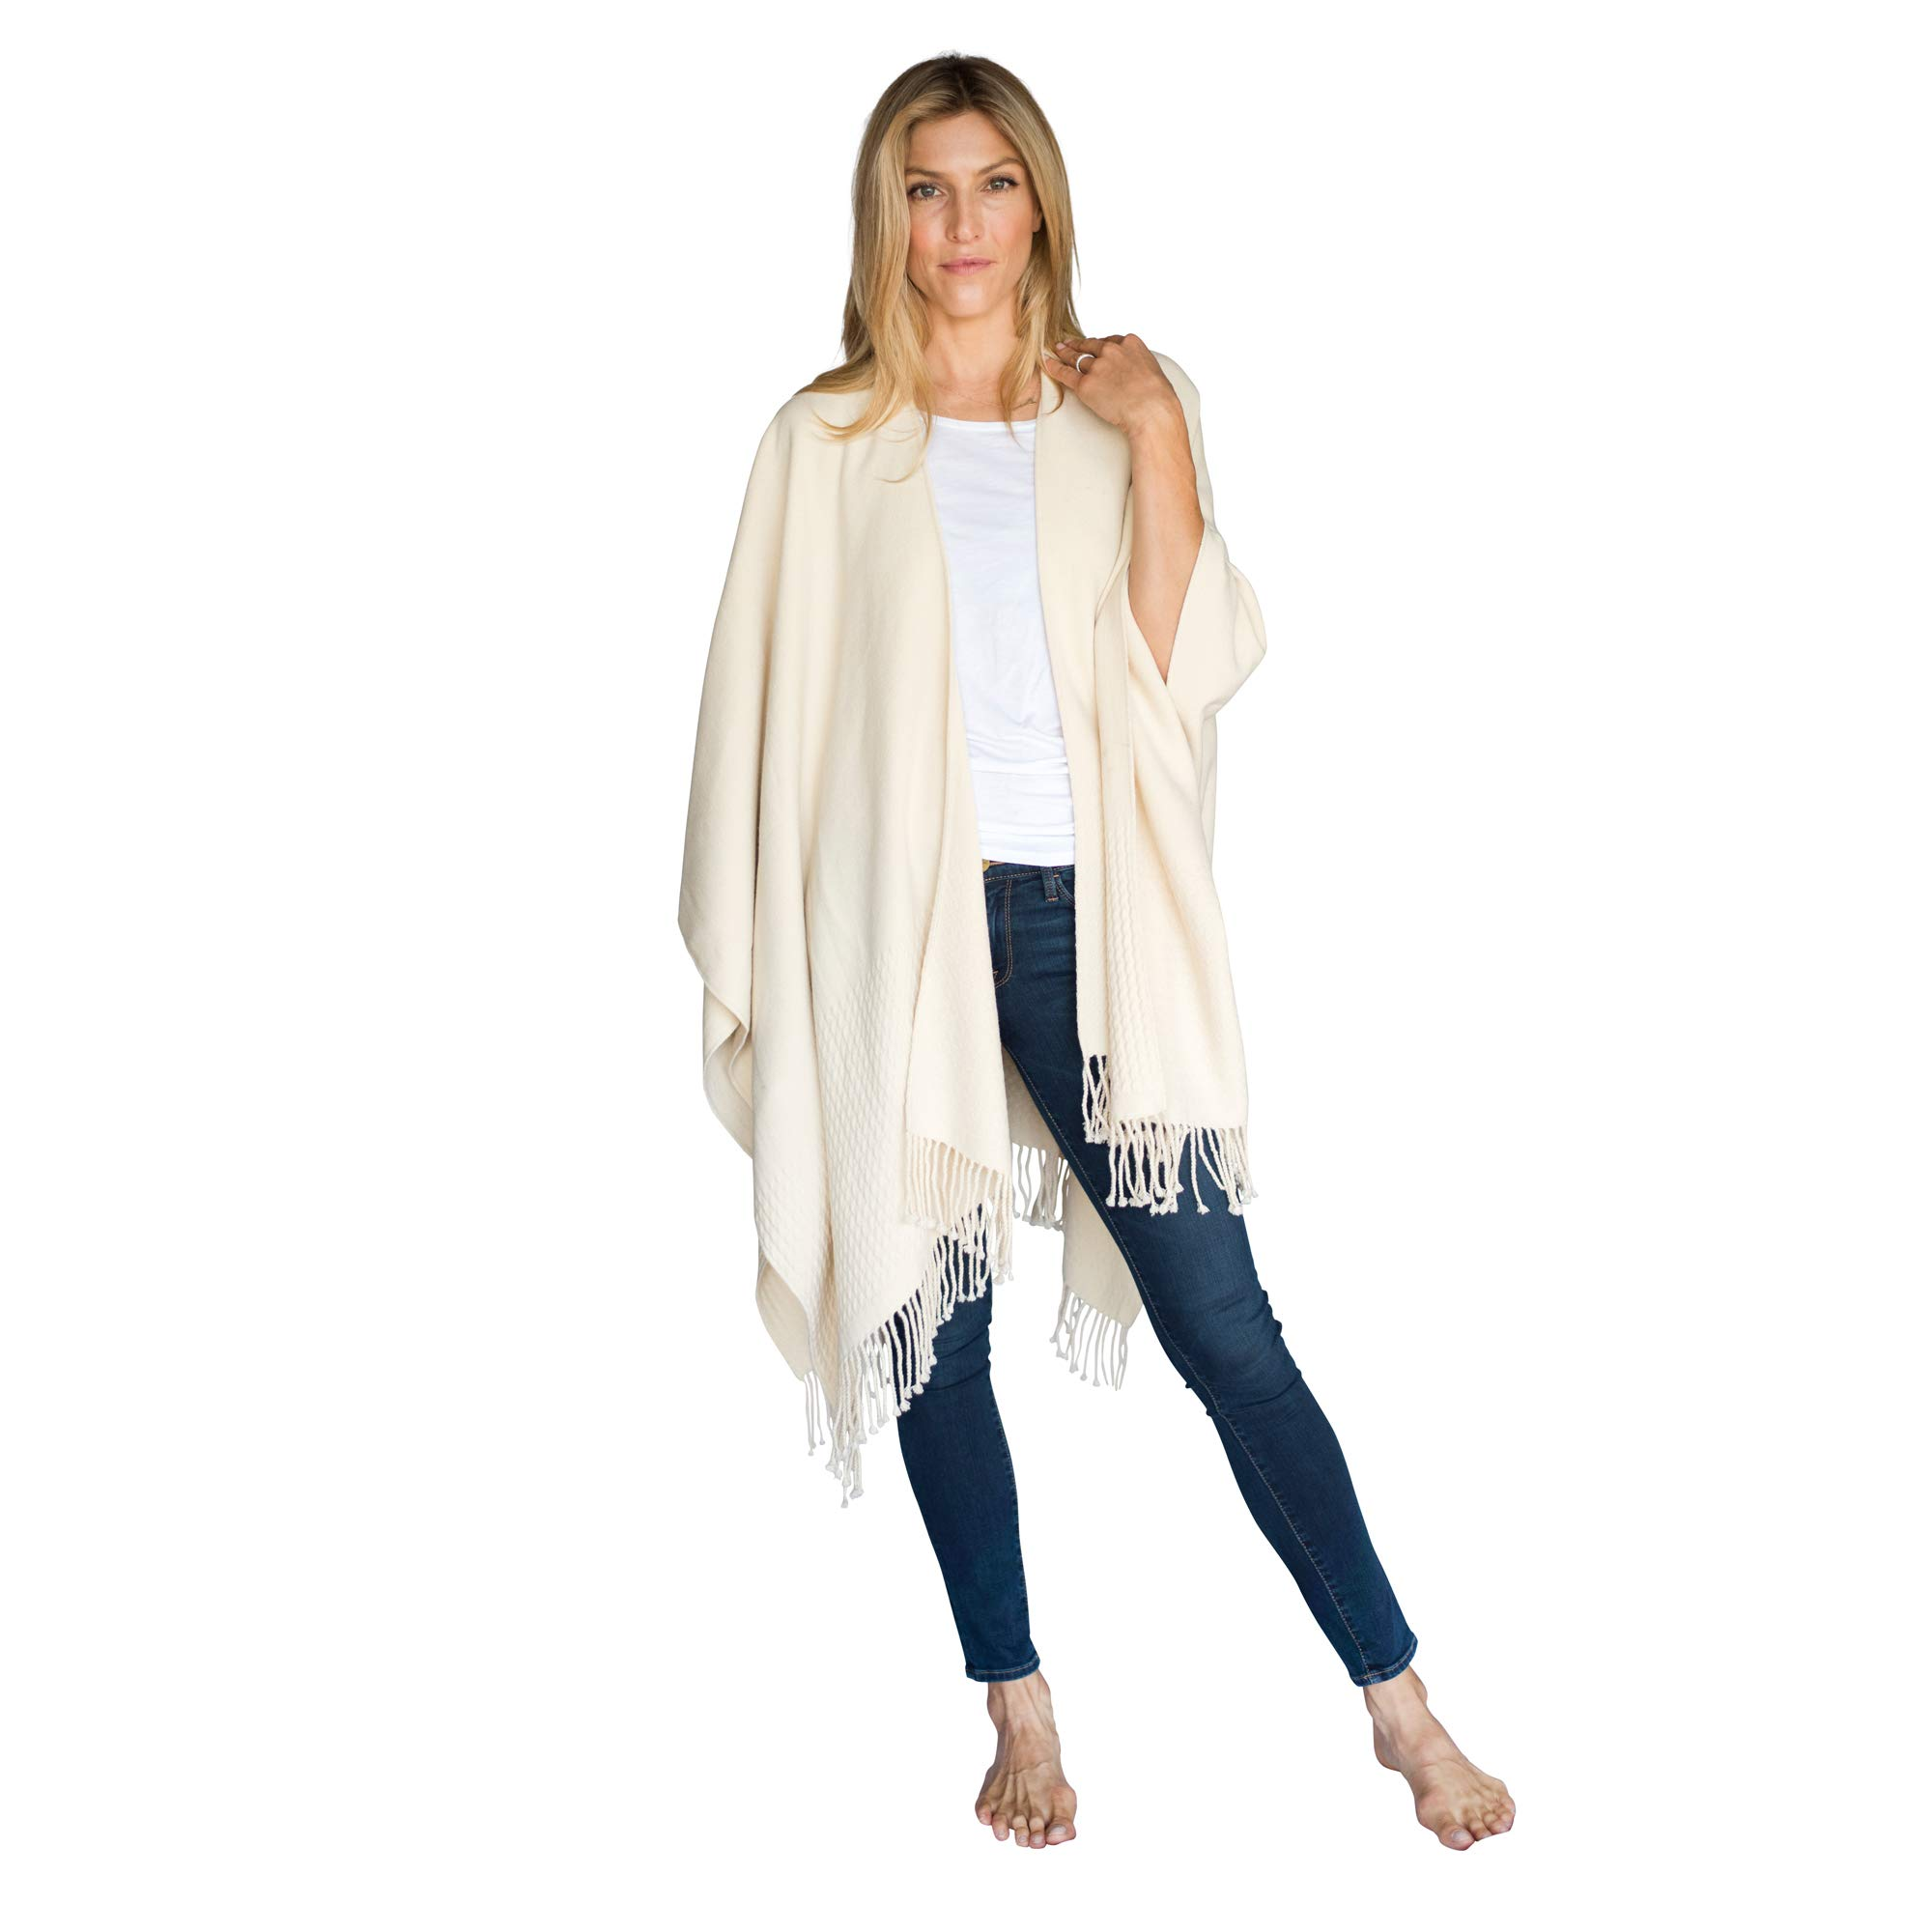 Mer Sea & Co Luxury Travel Wrap with Bag - Oyster (Creamy Off-White) - 61'' x 50'' by MER SEA & CO